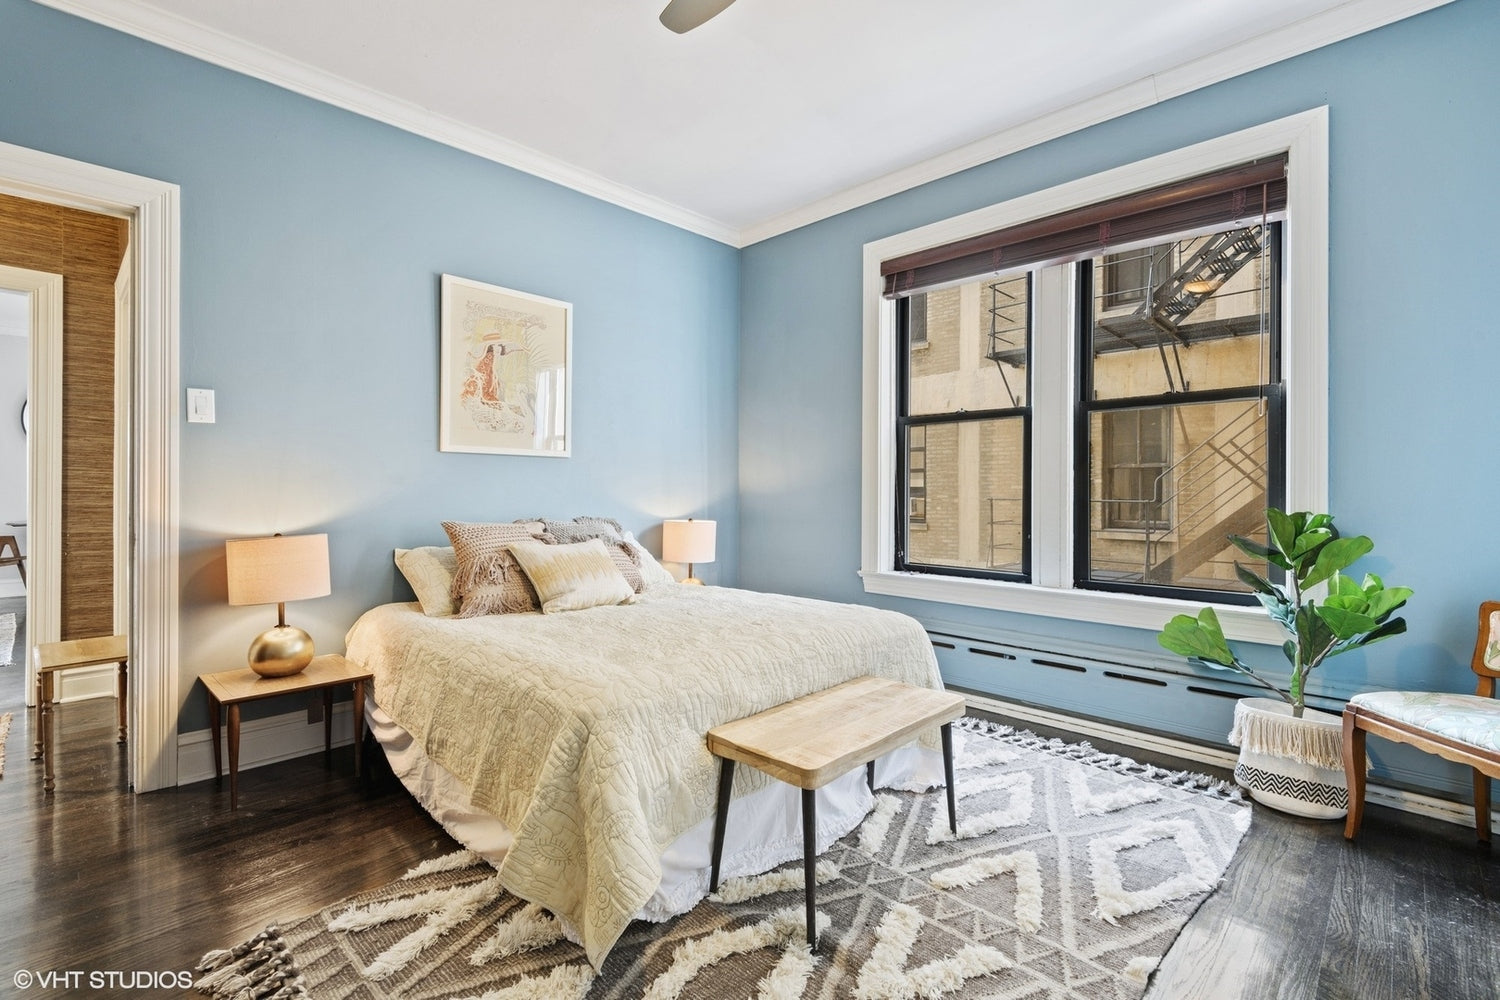 Eskell Chicago Staging promotes apartments for sale like this Chicago lakefront condo.